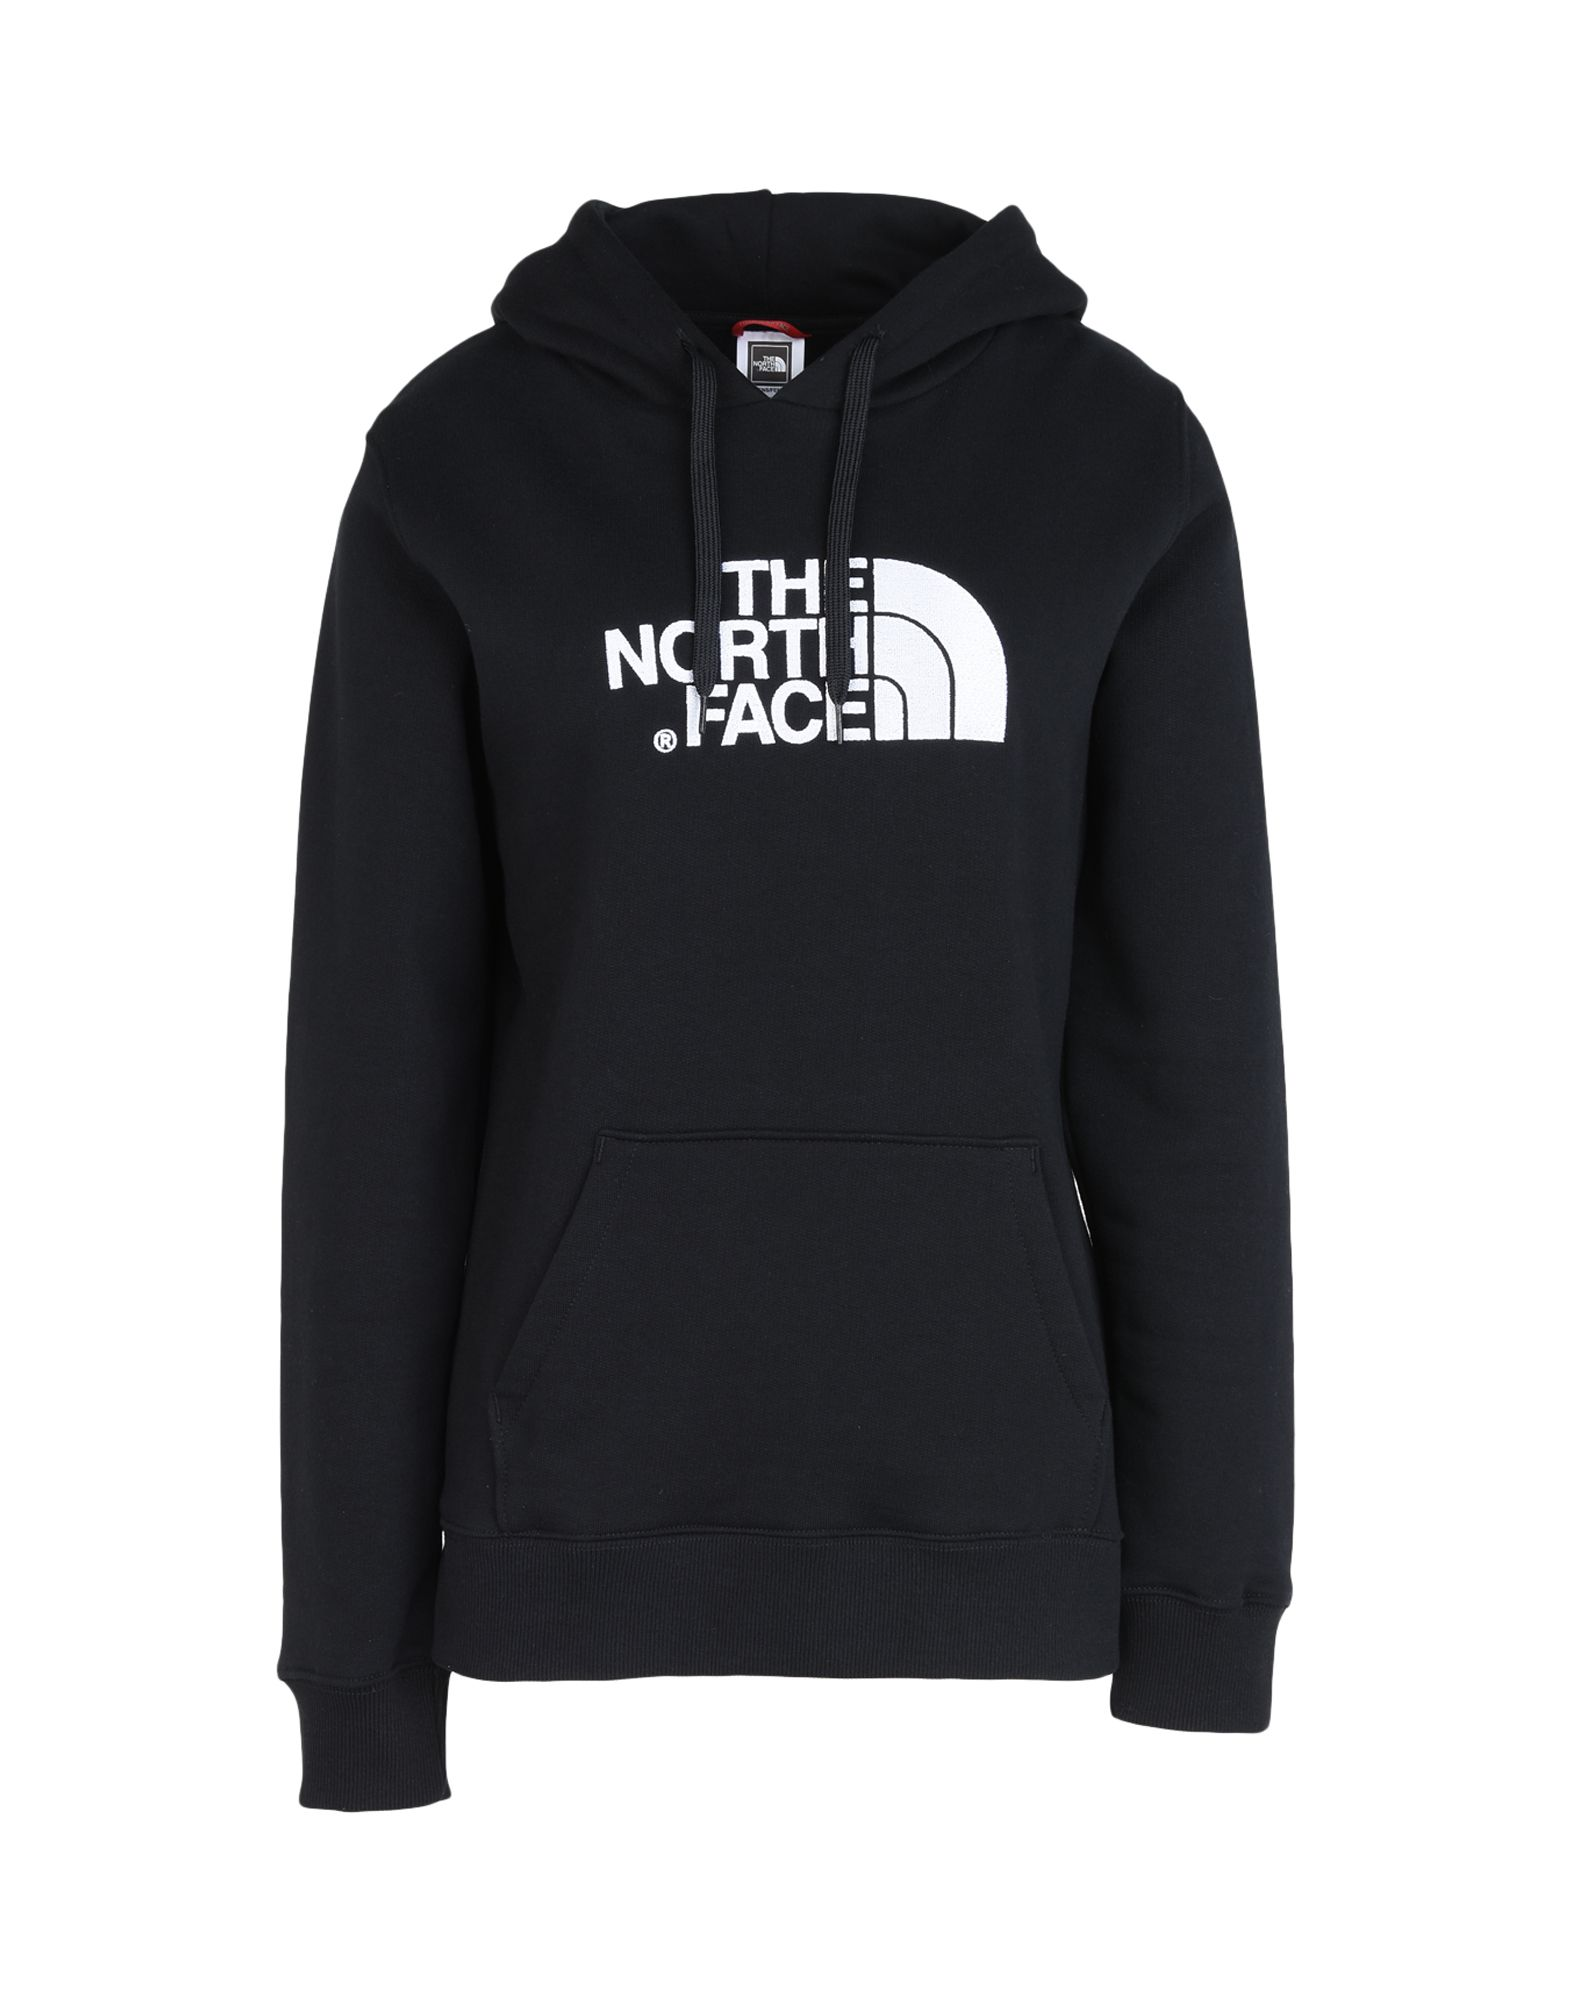 47eb1a442d0f THE NORTH FACE. FELPA W DREW PEAK PULLOVER HOODIE. Hooded track jacket